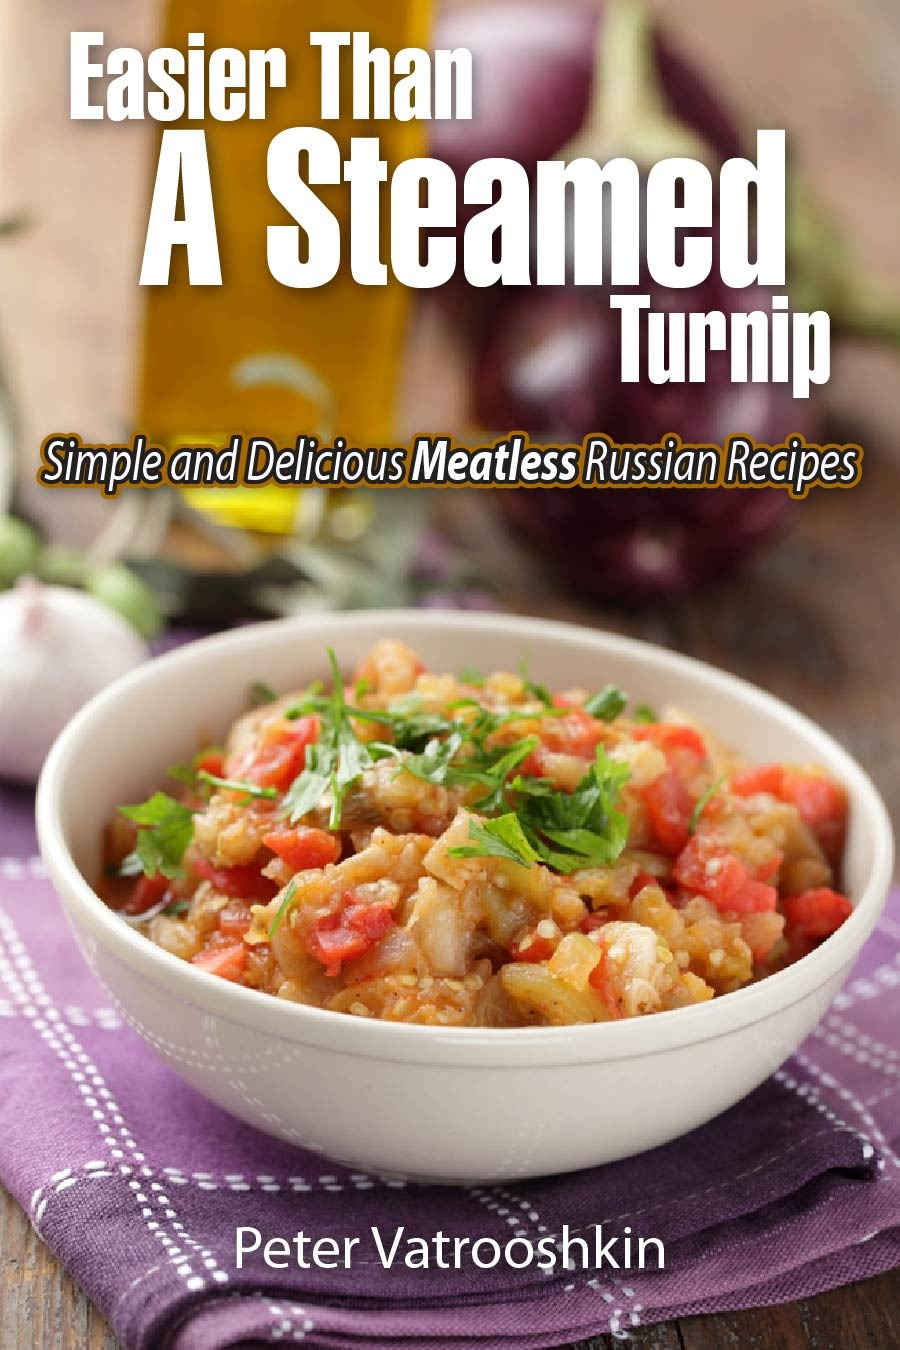 Easier Than a Steamed Turnip: Simple and Delicious Meatless Russian Recipes